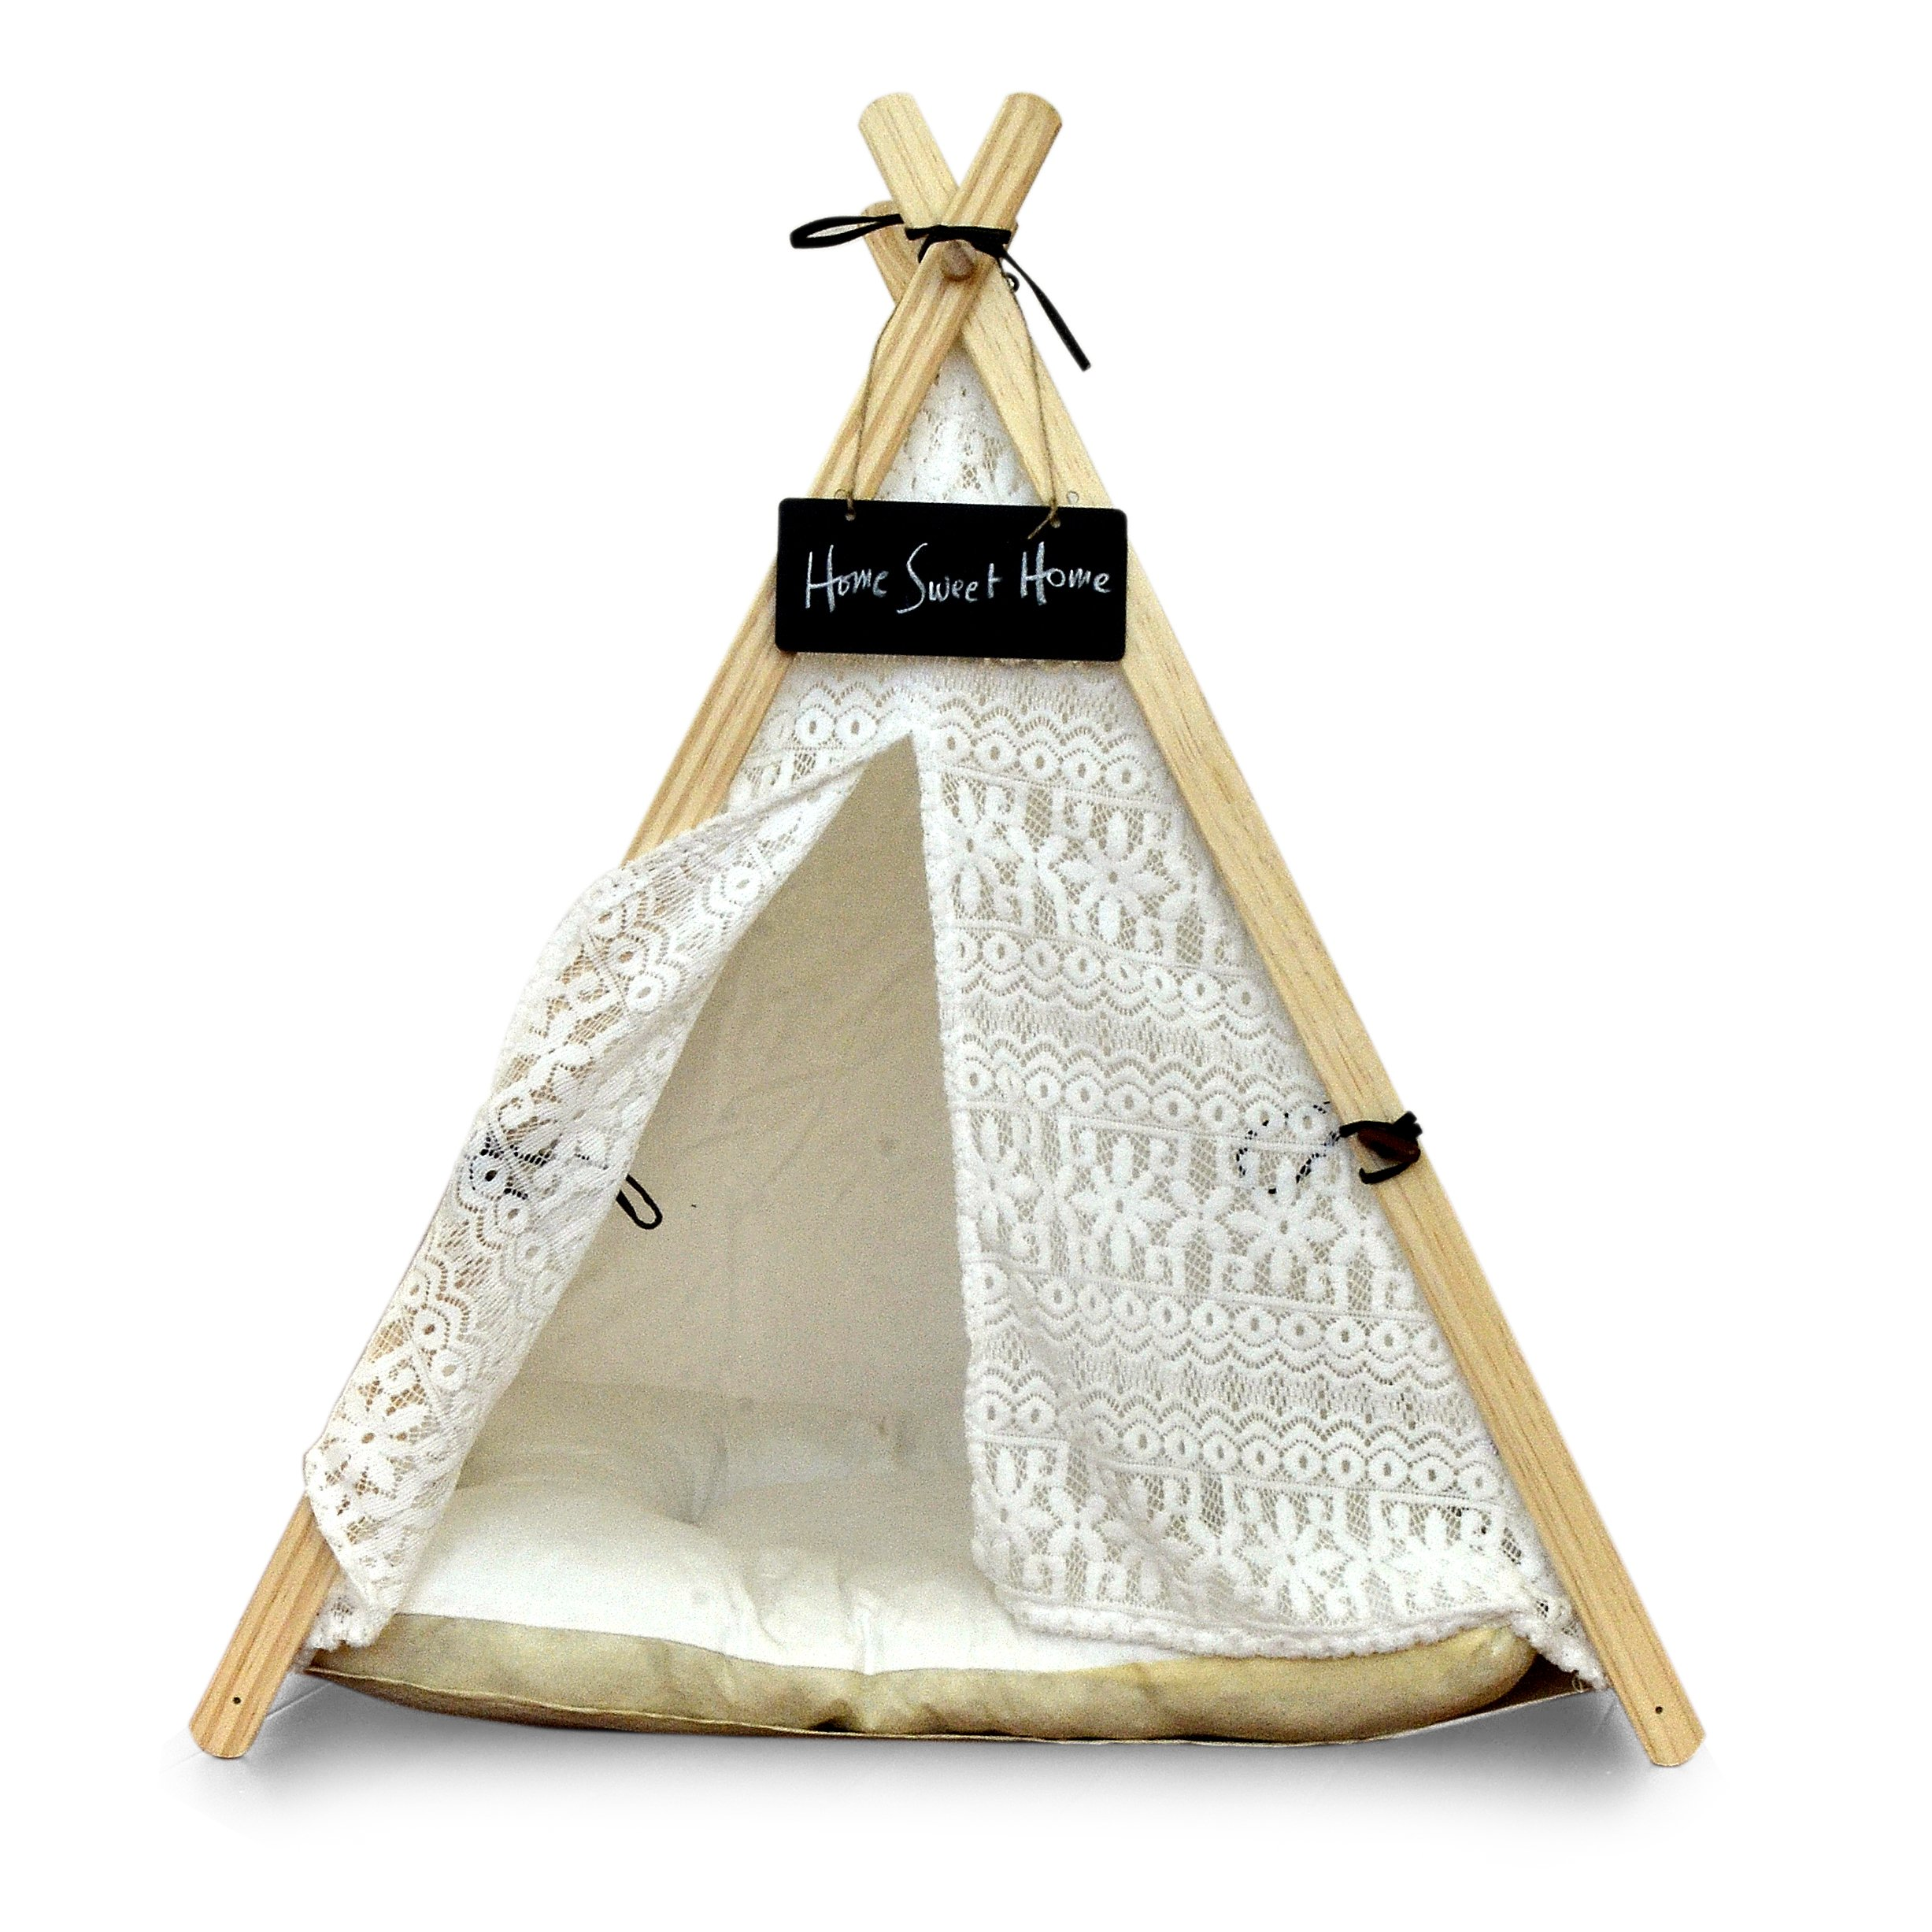 LUVE Large Pet Teepee Dog(Puppy) & Cat Bed, Pet Tents Houses for Dog(Puppy) & Cat with Removable Cushion Pad & Gifts (Lace)